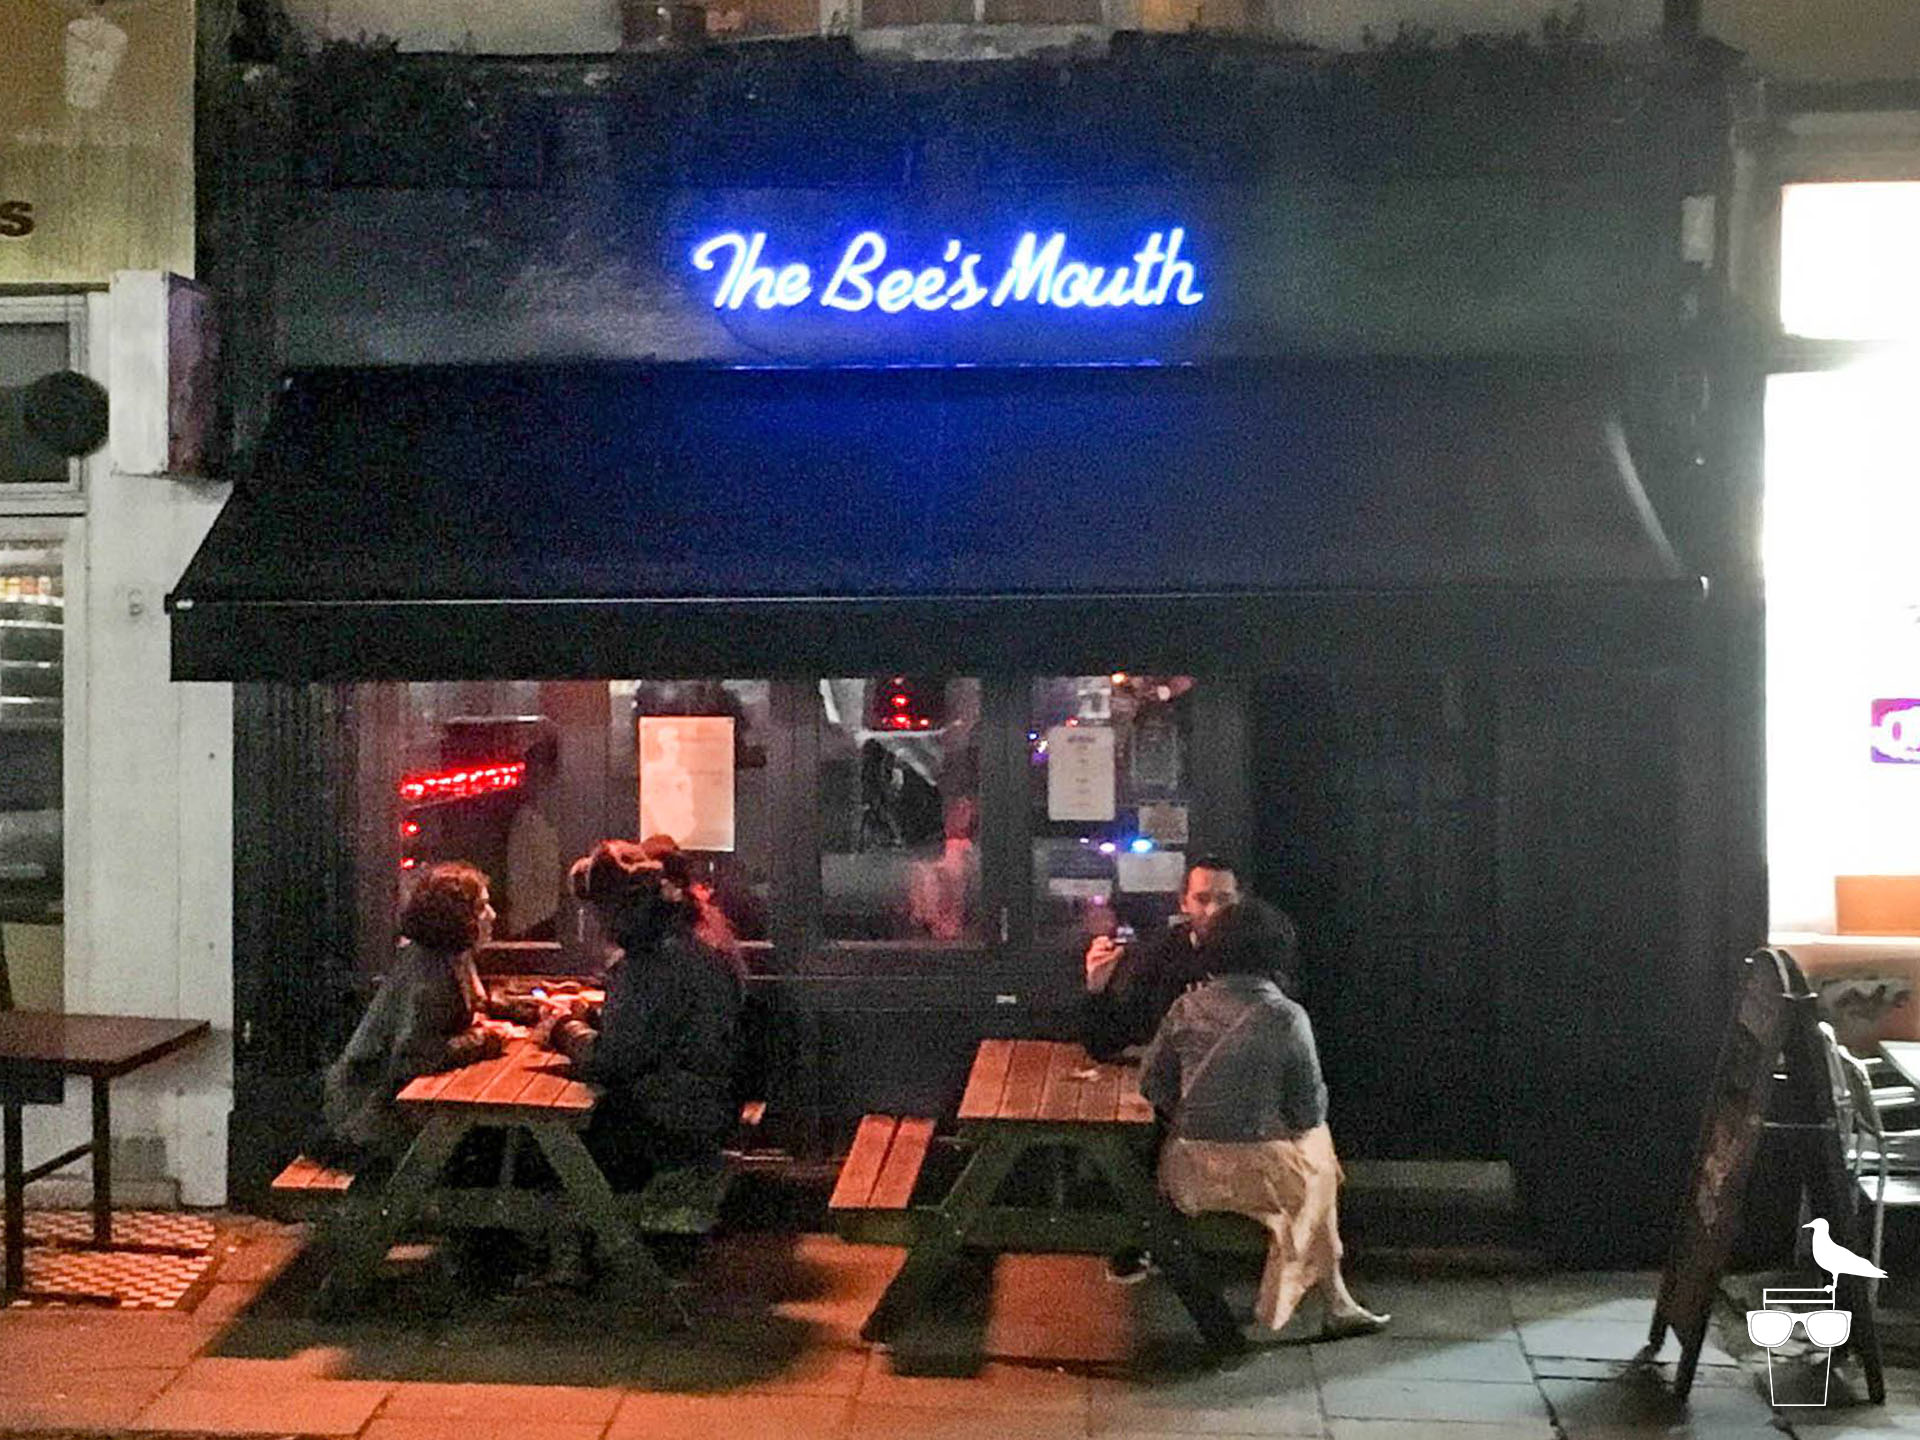 the bees mouth bar brighton outside front of pub with benches